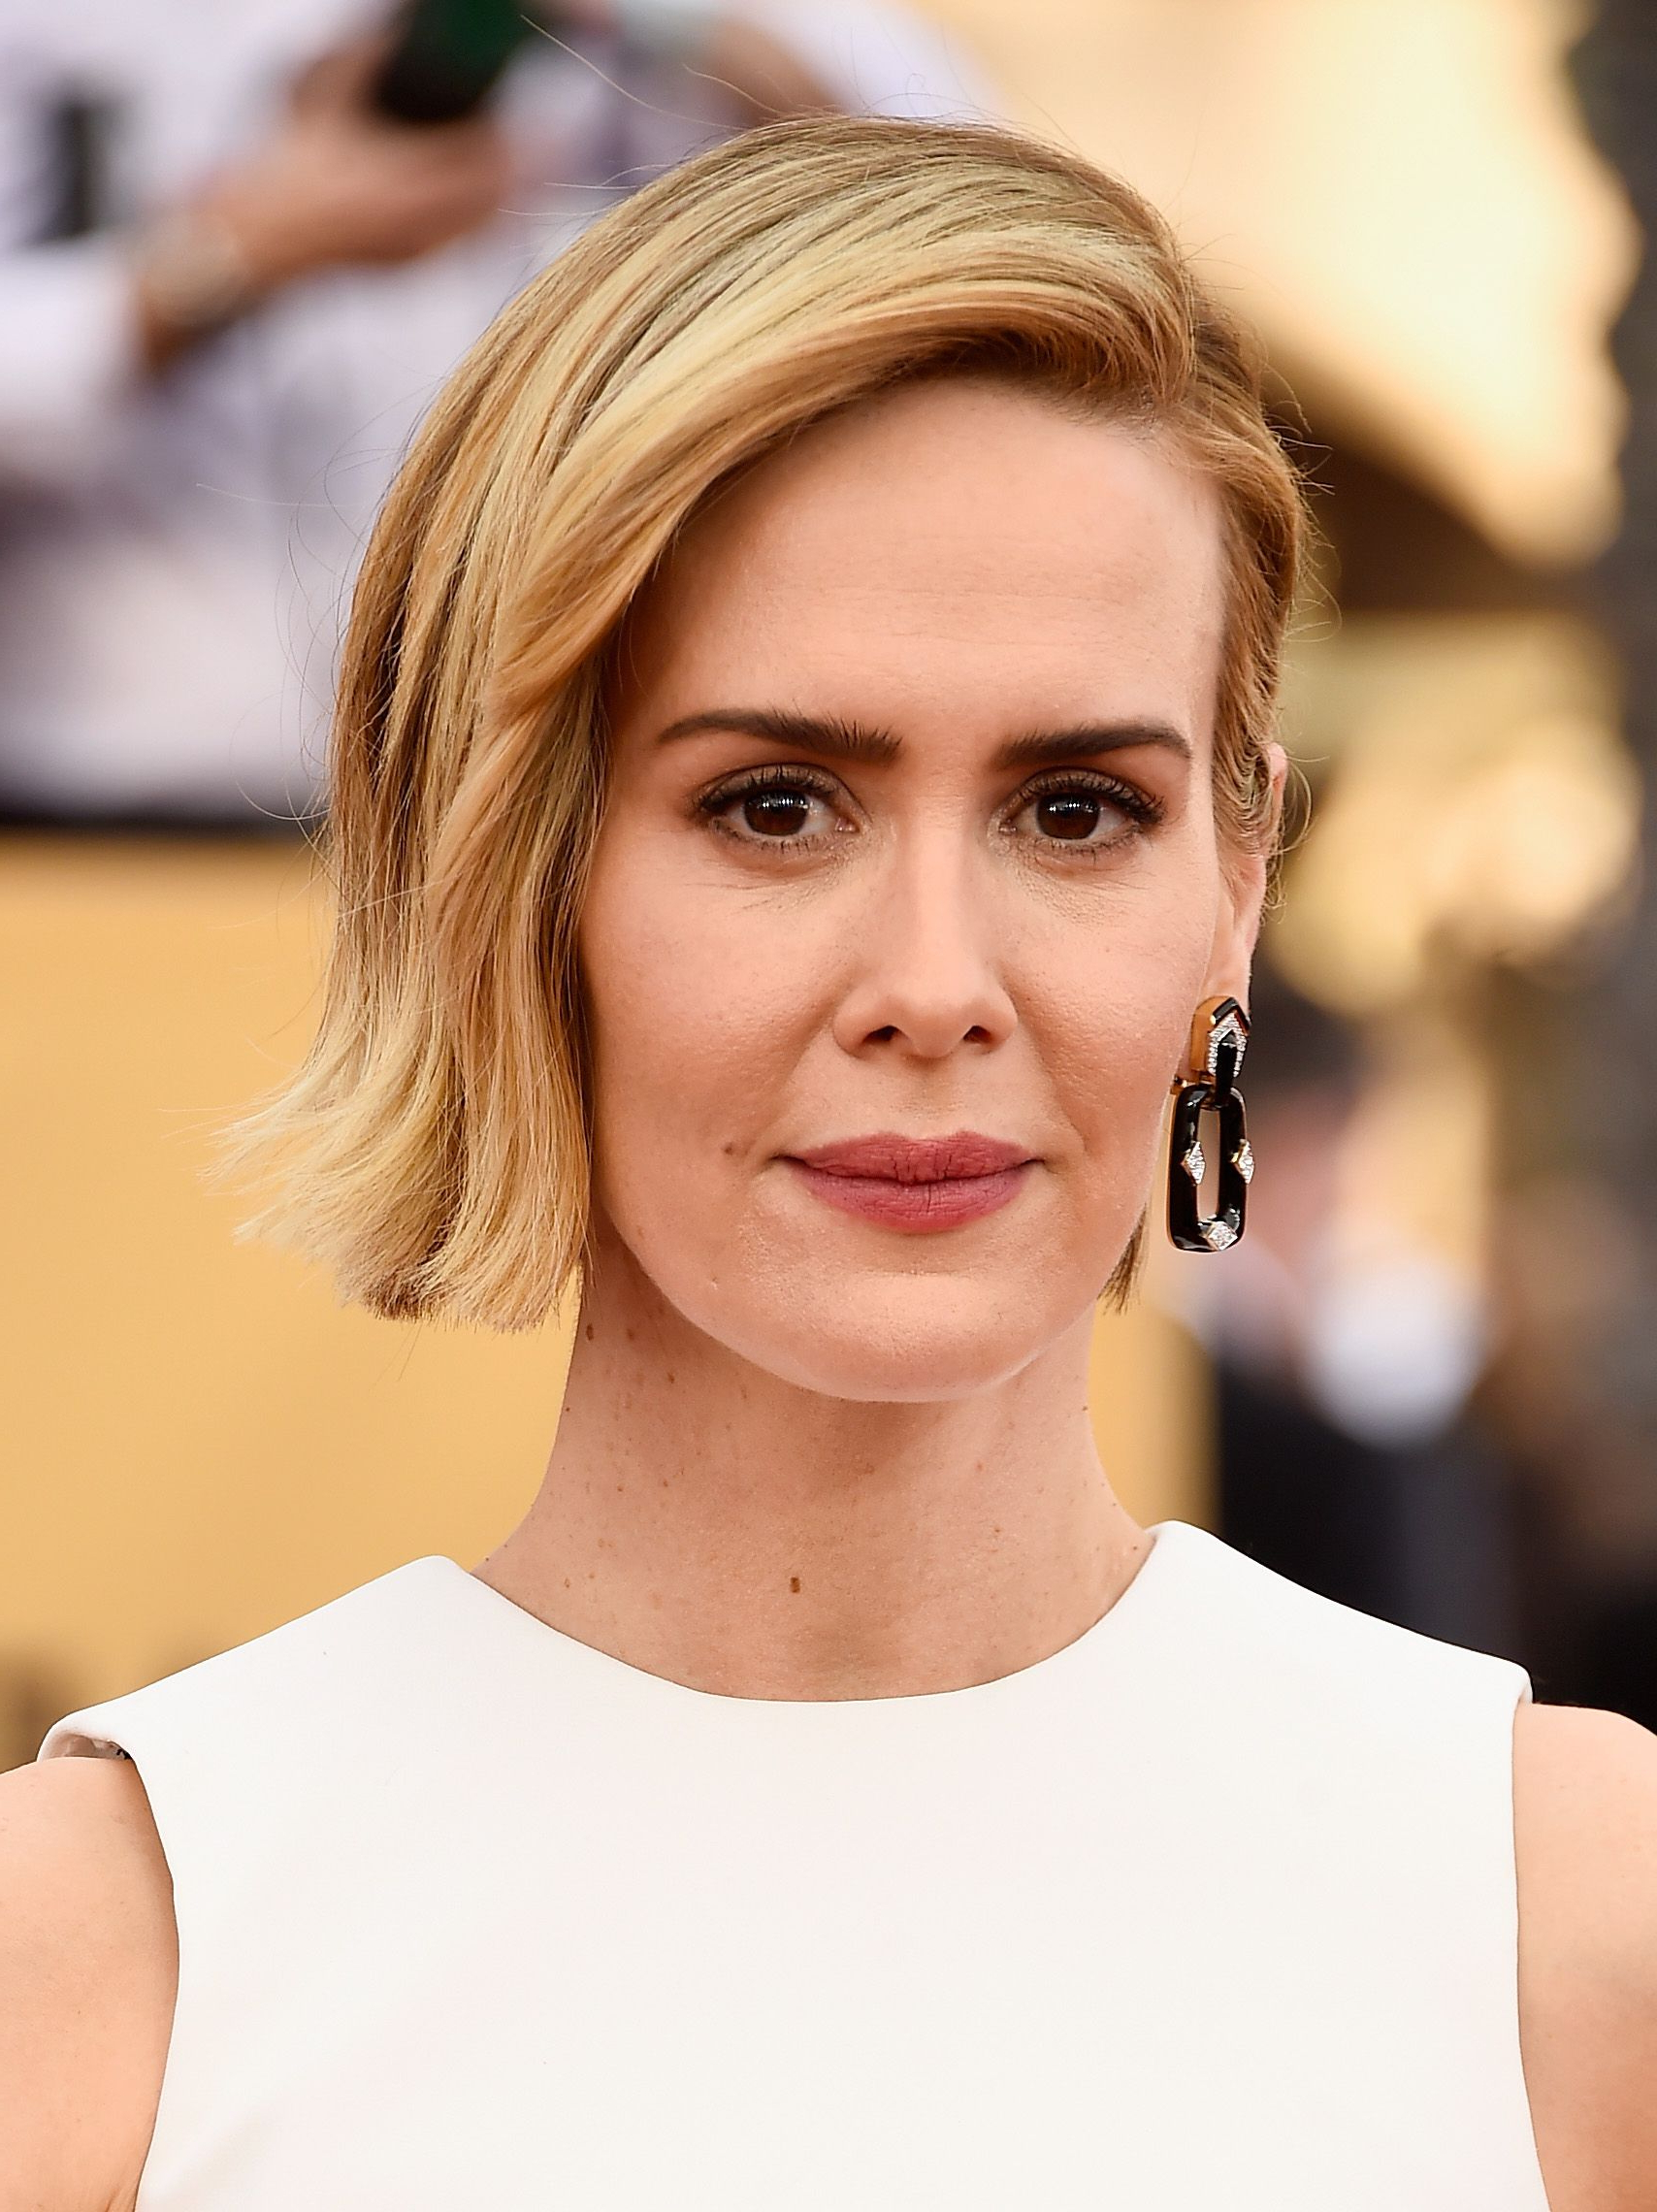 65 Best Short Hairstyles, Haircuts, And Short Hair Ideas For 2018 Within Celebrities Short Haircuts (Gallery 10 of 25)